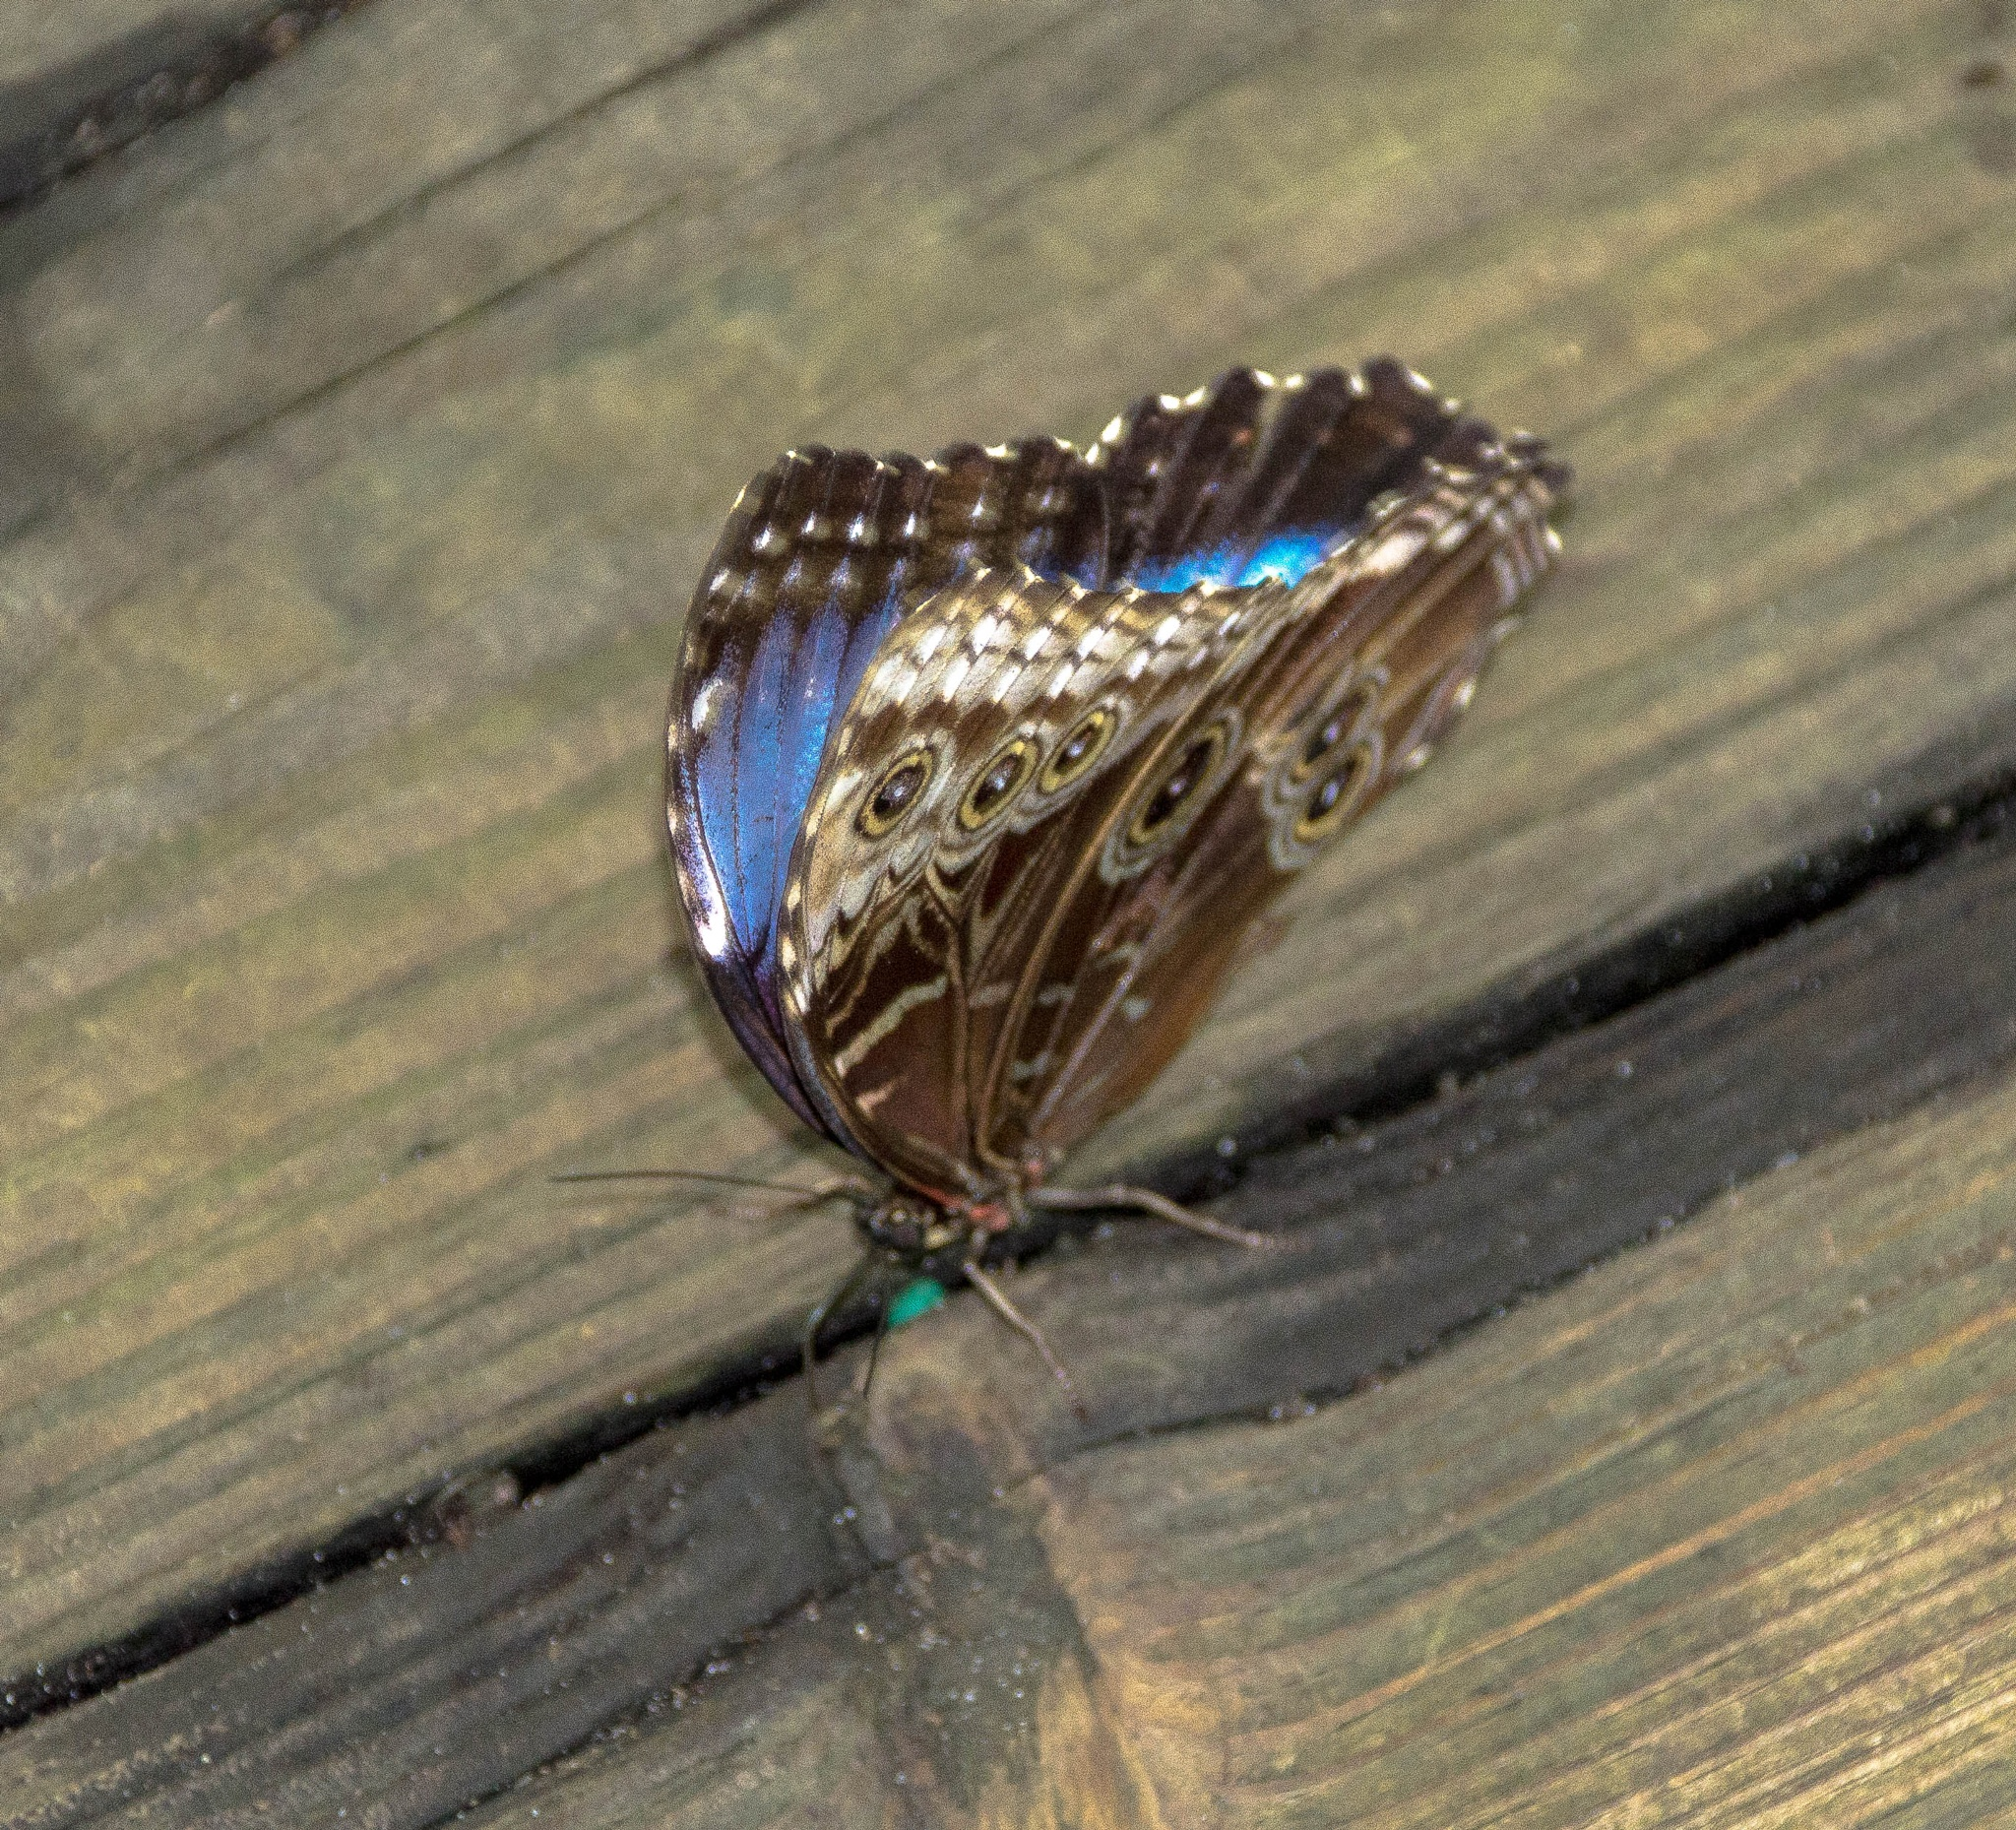 My Elusive Butterfly - Part II by Peter Cavaliere